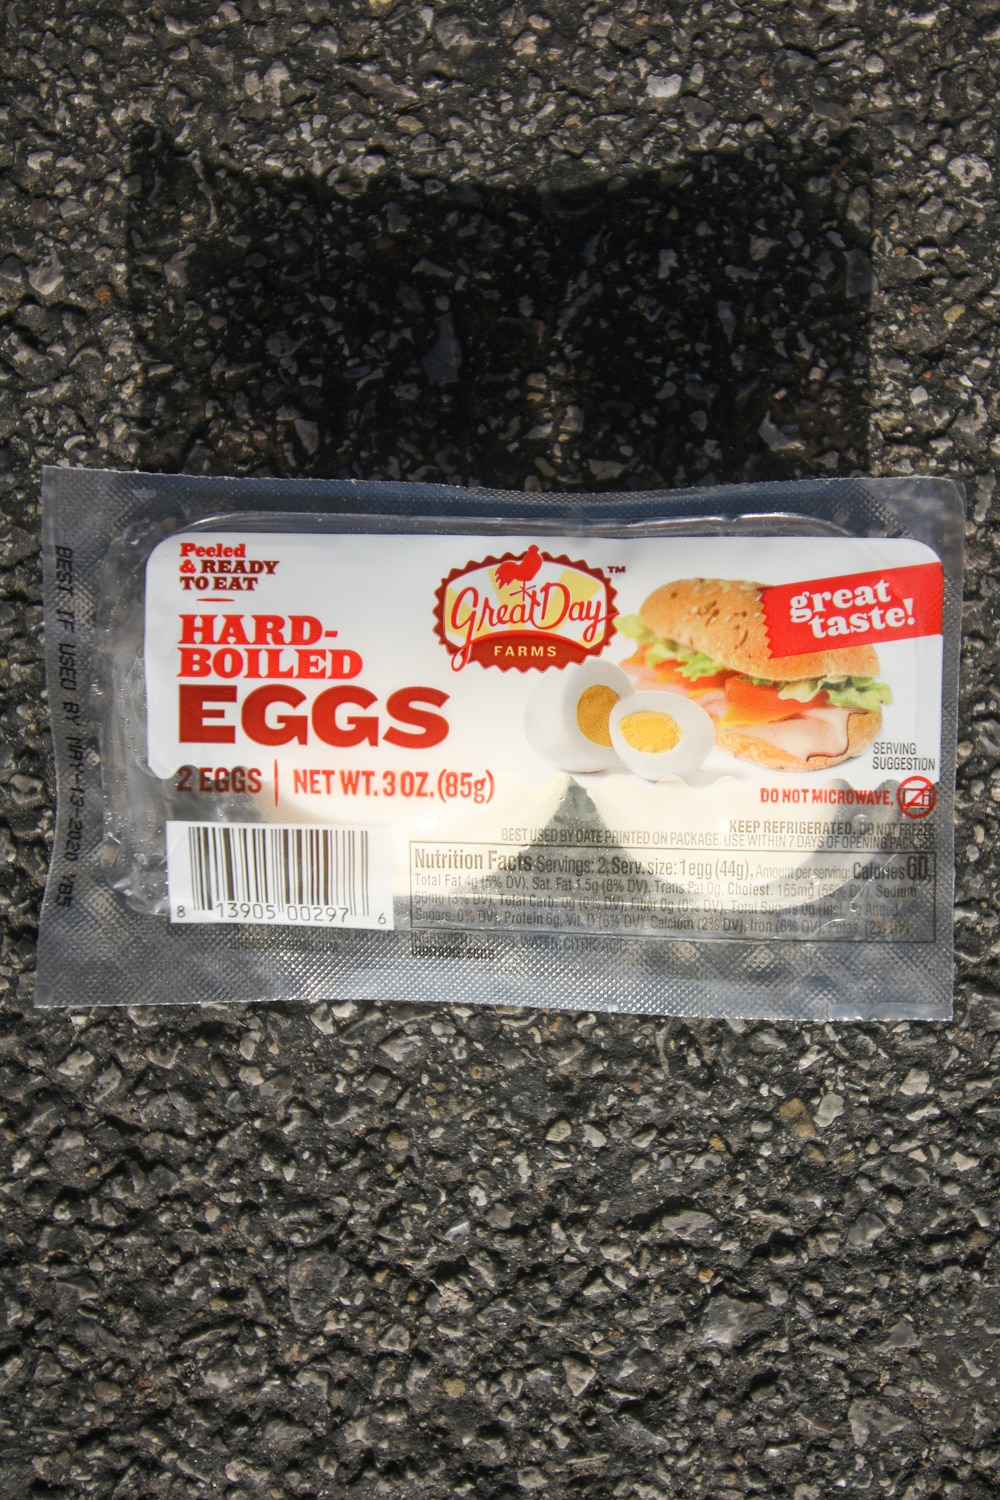 A package with 2 hard boiled eggs in it.